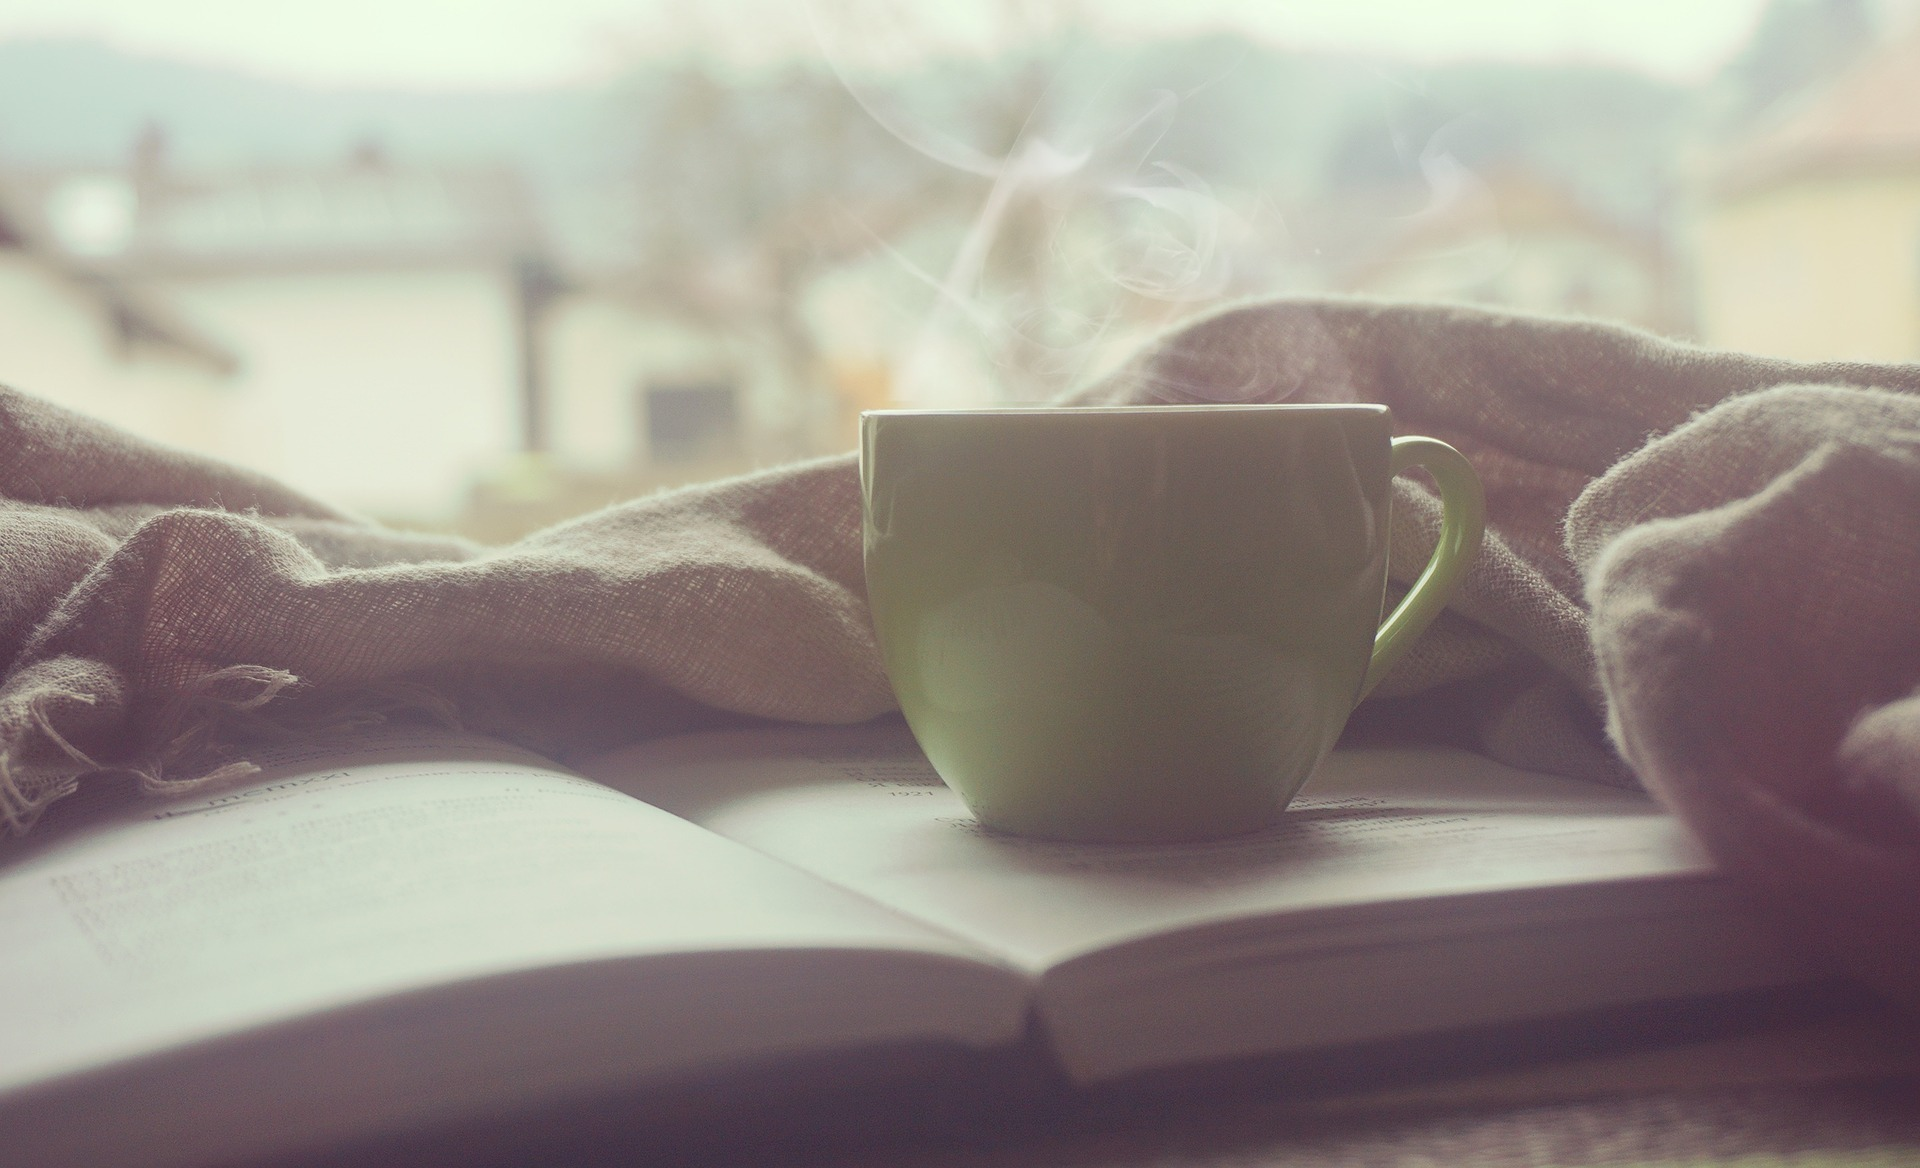 Coffee mug sitting on open book with blanket